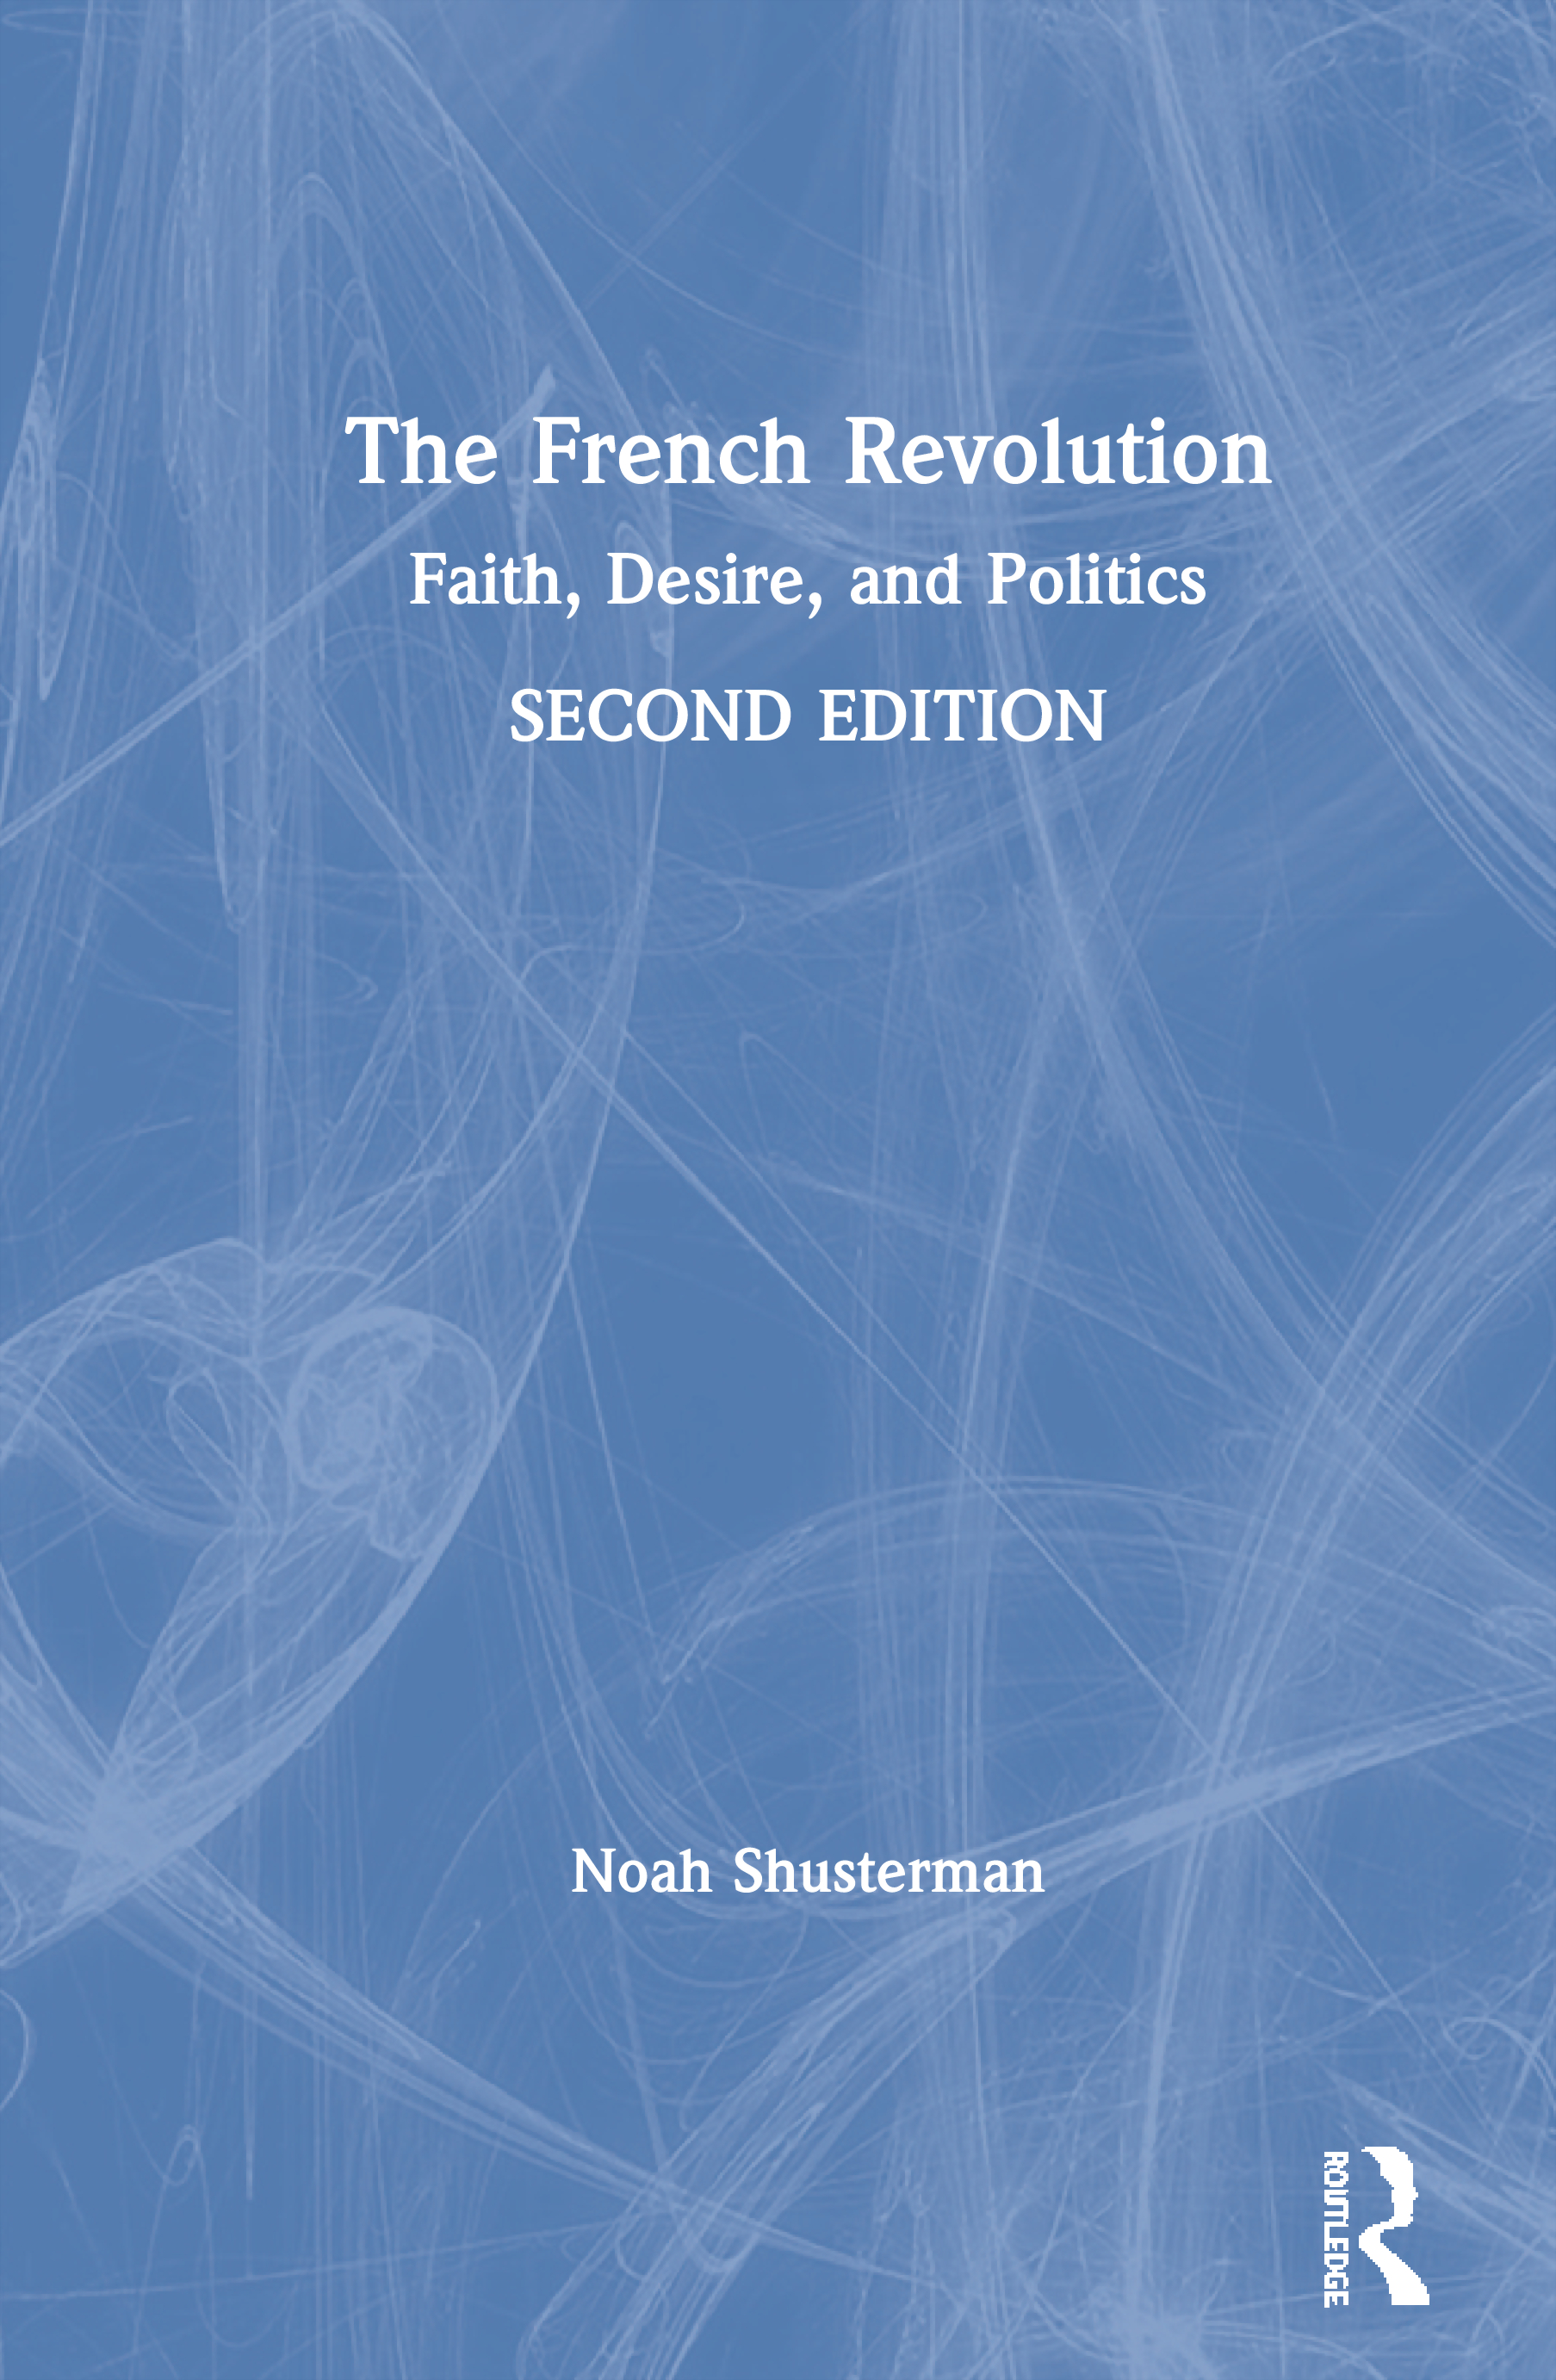 The French Revolution: Faith, Desire, and Politics book cover